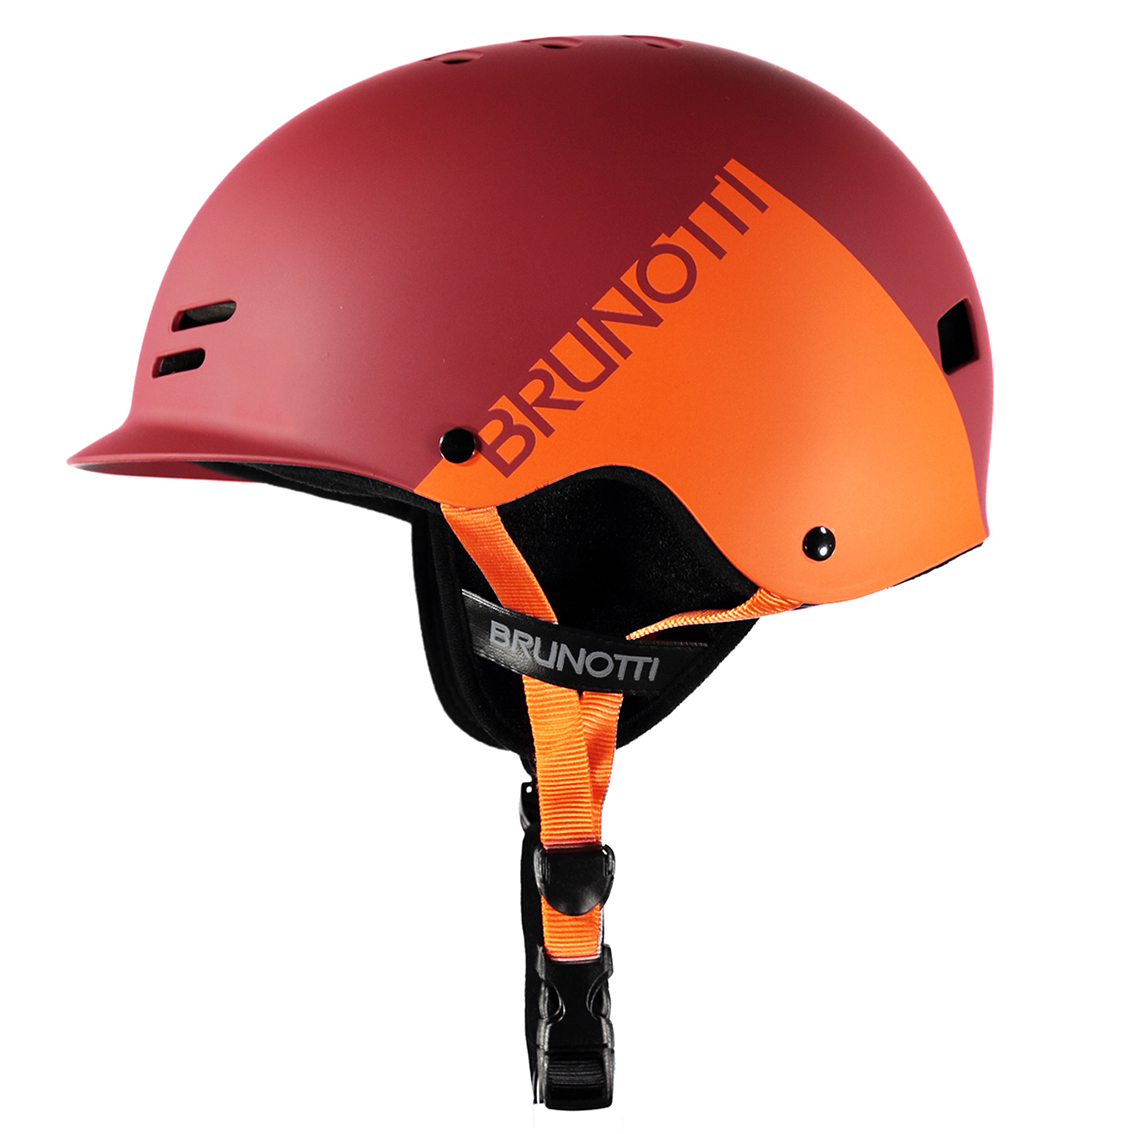 BRAVERY HELMET RED/ORANGE BRUNOTTI 2017